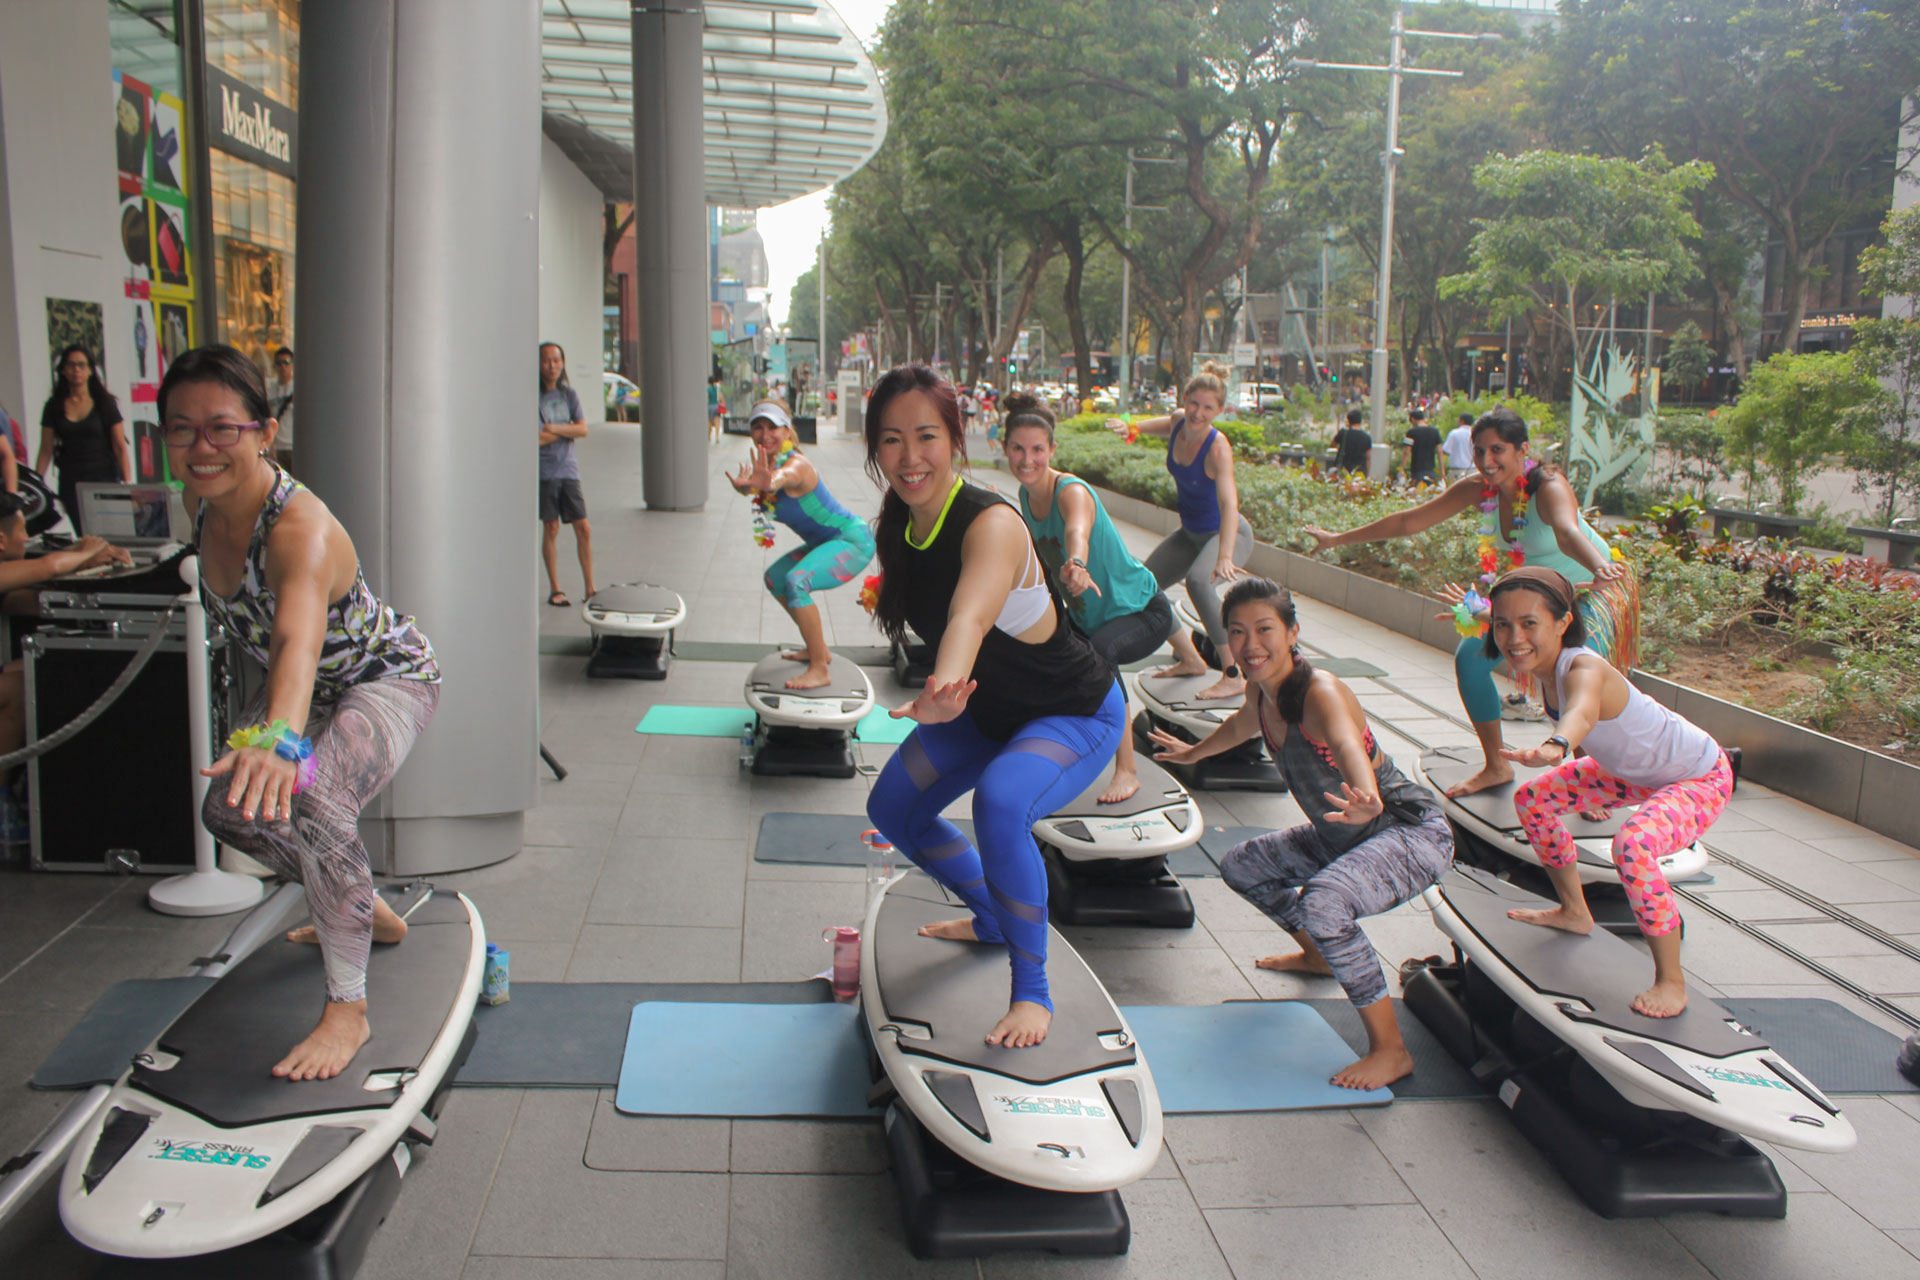 Surfing Fitness in Orchard